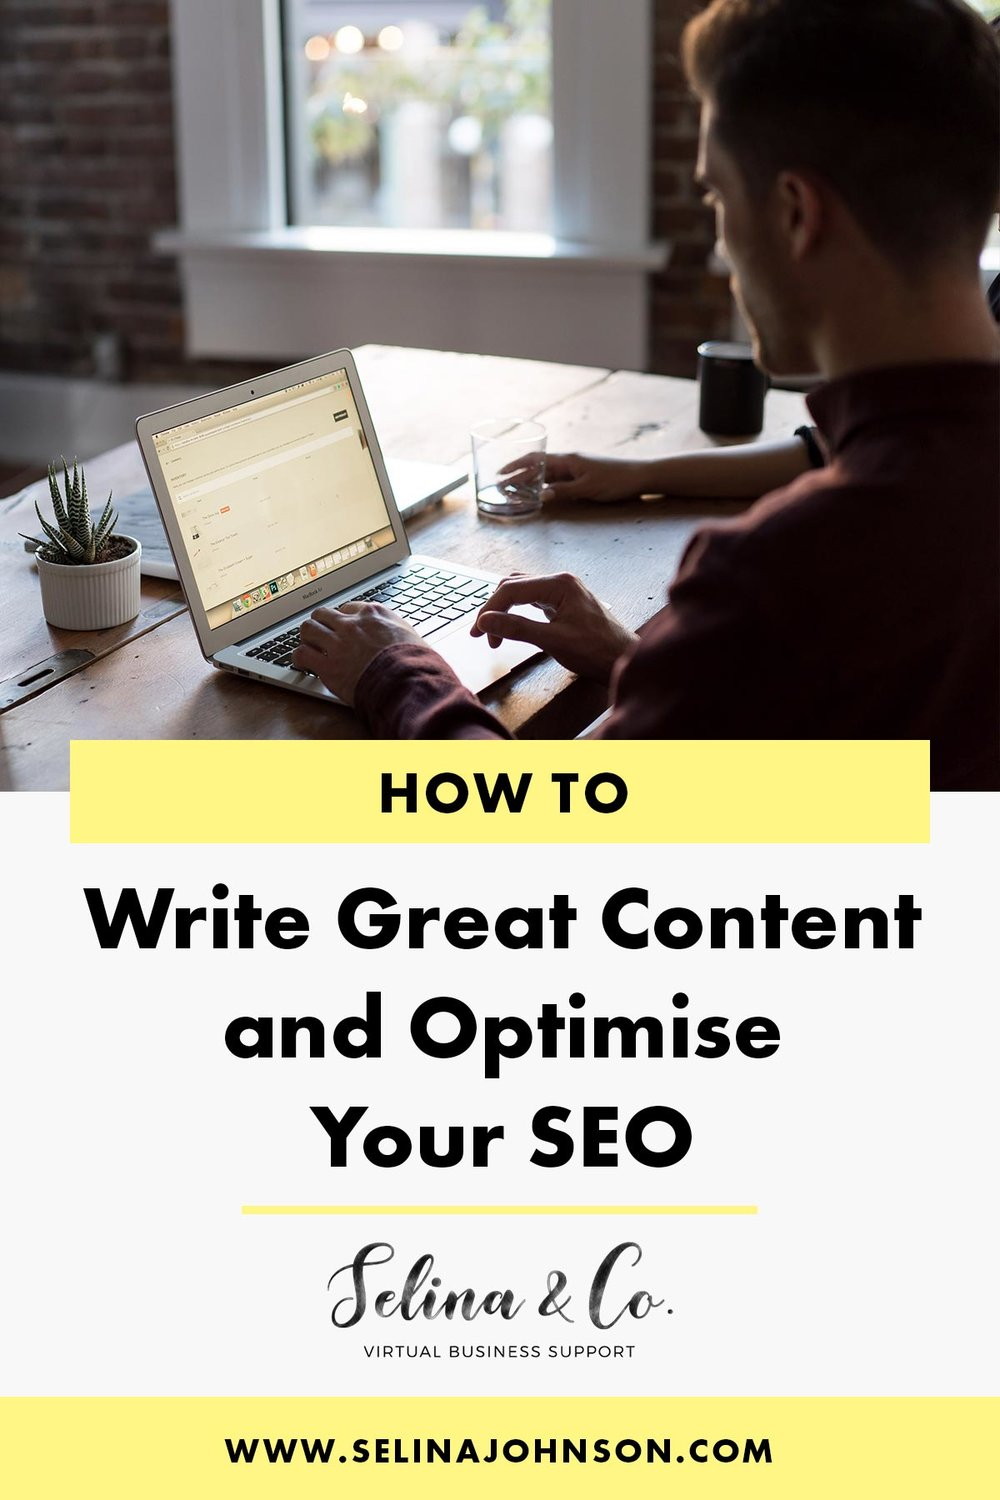 how-to-write-optimise-SEO.jpg